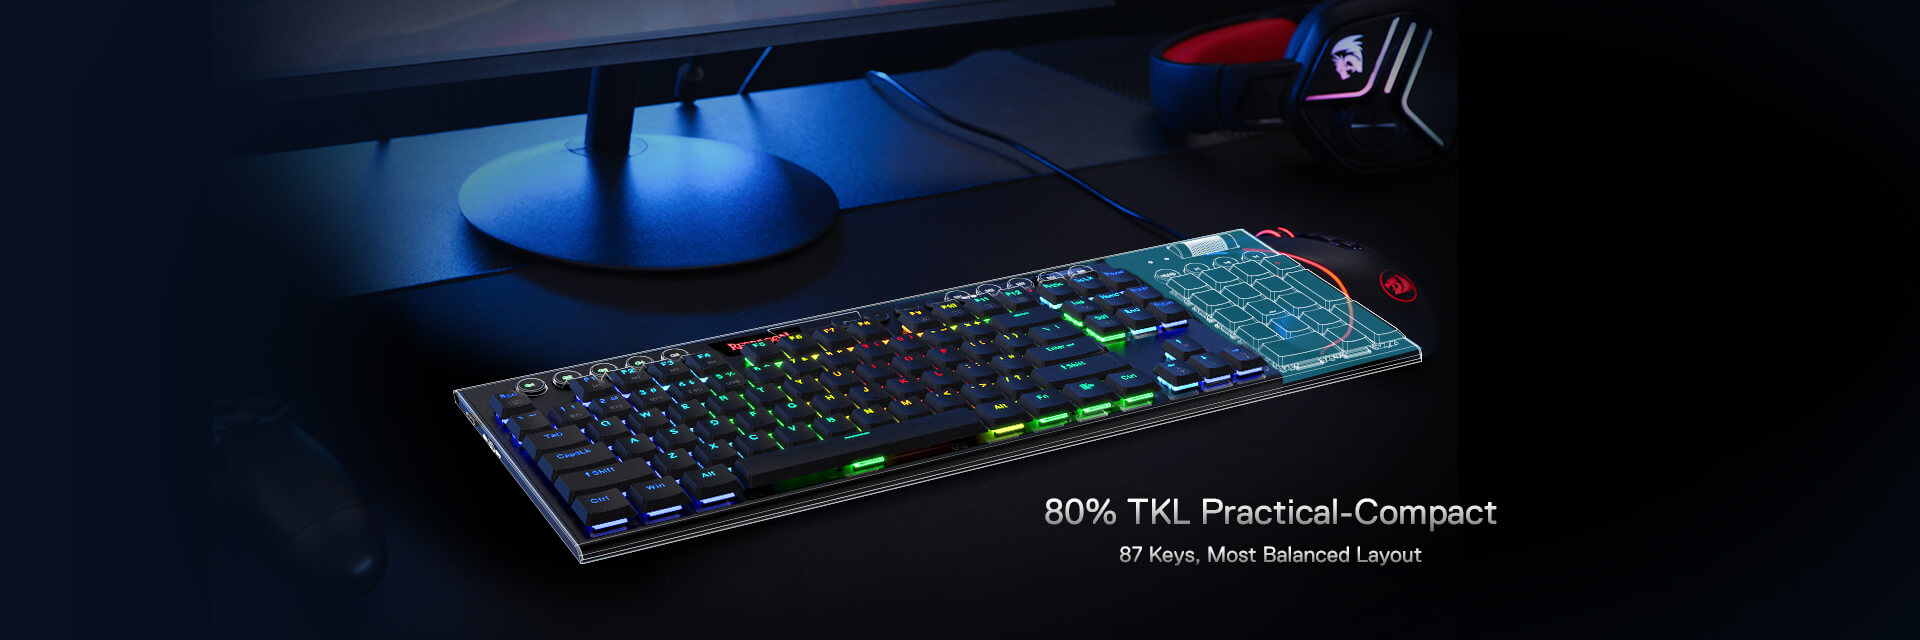 5.0 BT/2.4 Ghz/Wired Three Modes TKL Ultra-Thin Low Profile Bluetooth Keyboard w/Dedicated Media Control & Linear Red Switches